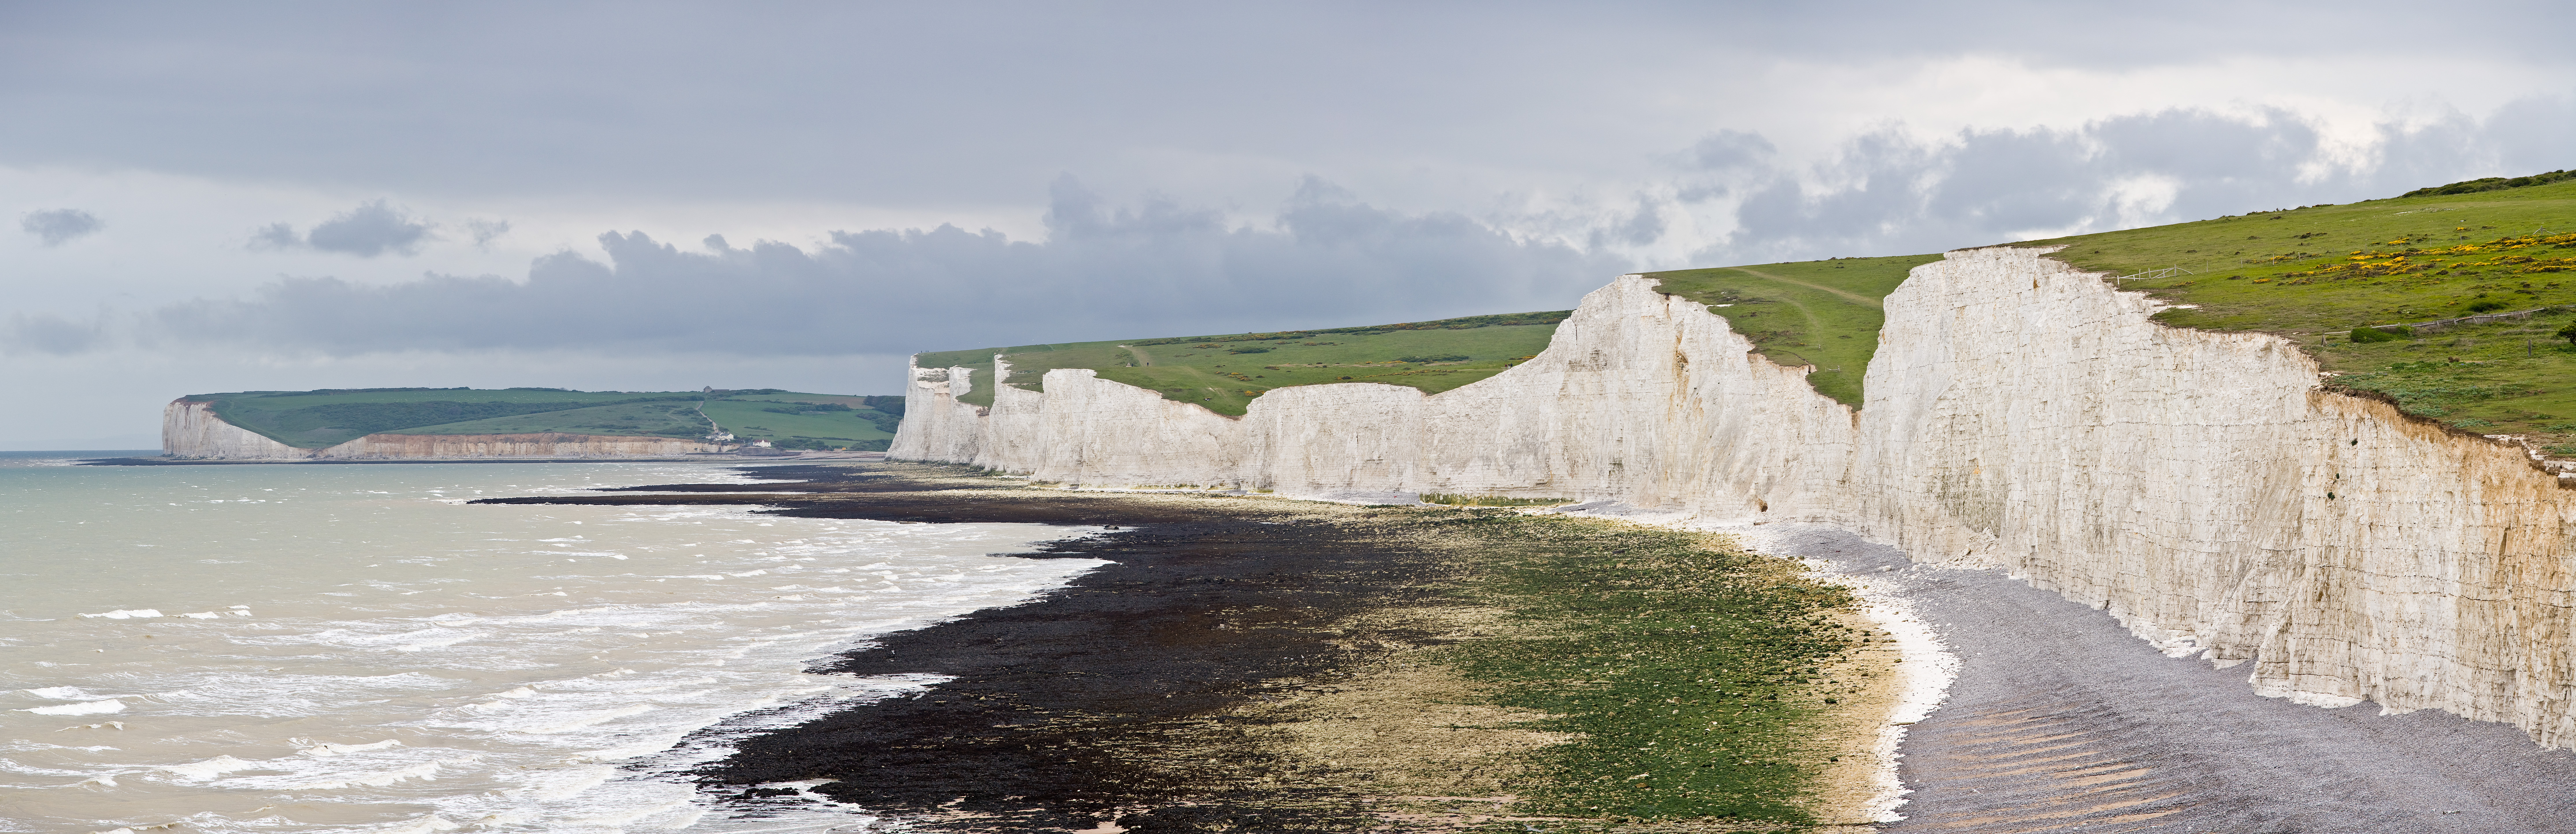 Seven Sisters Sussex Wikipedia - 7 things to see in and around dover england